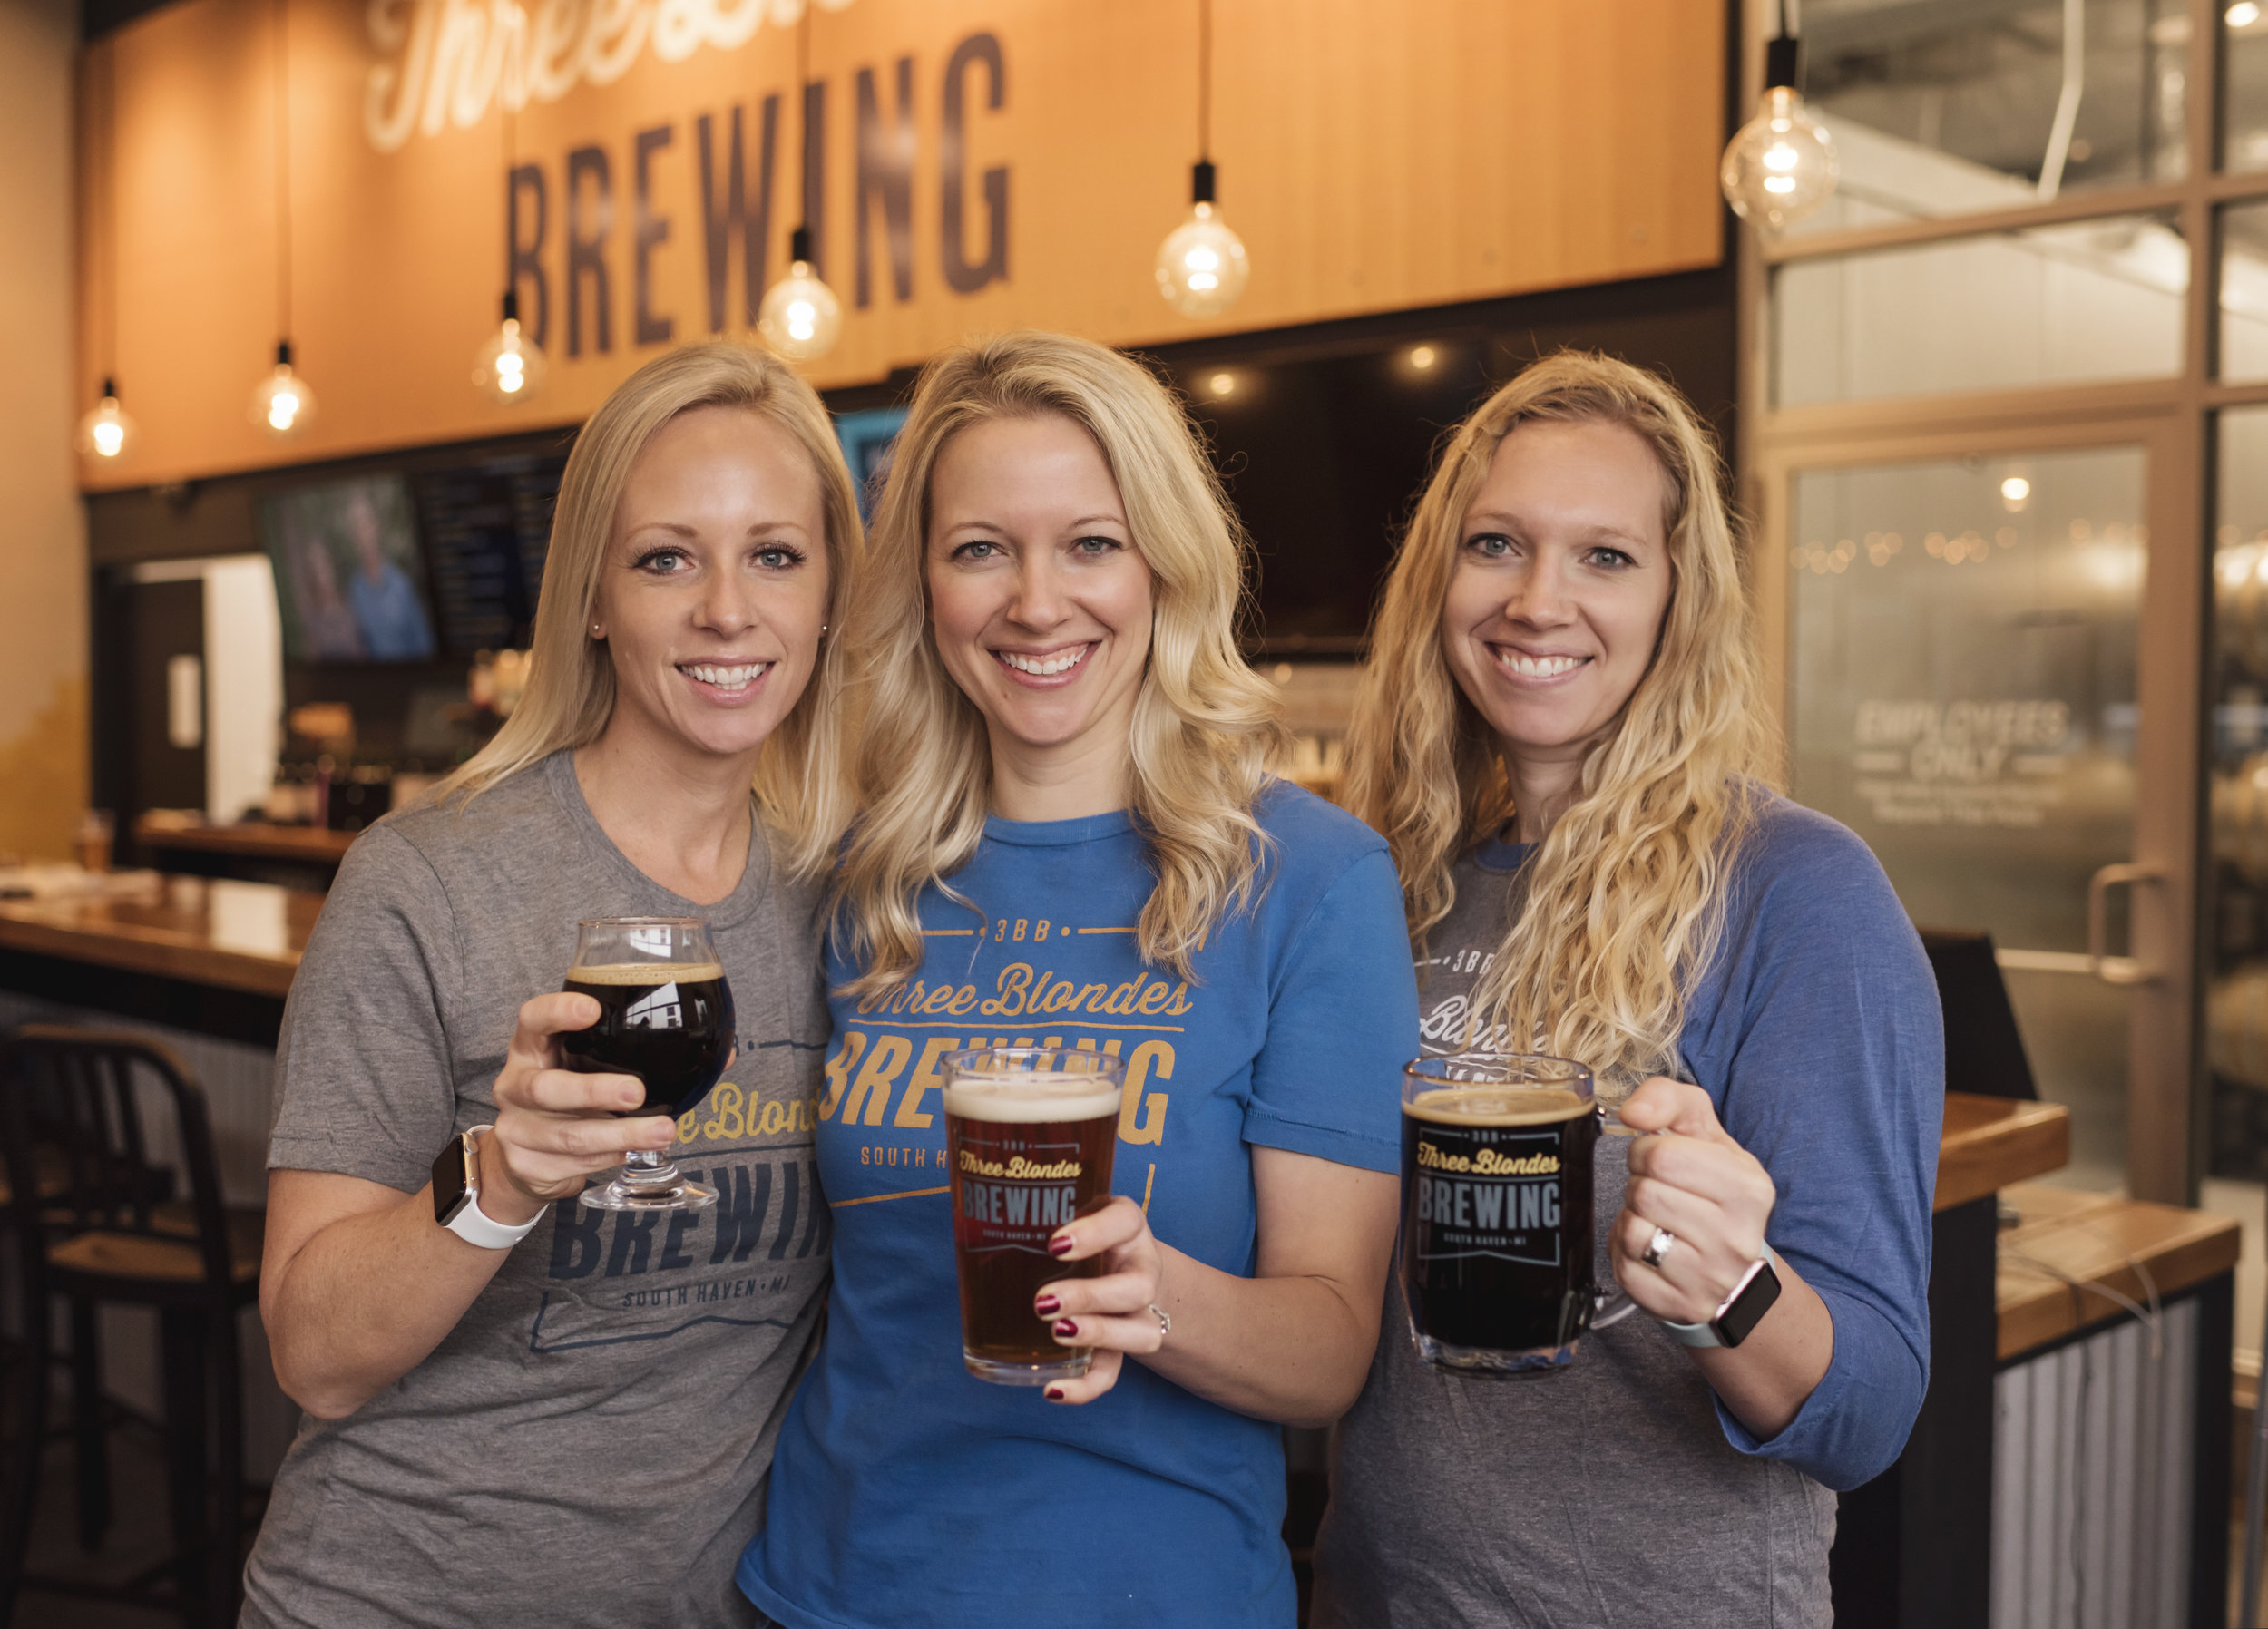 3 blondes holding beer in front of bar.jpg